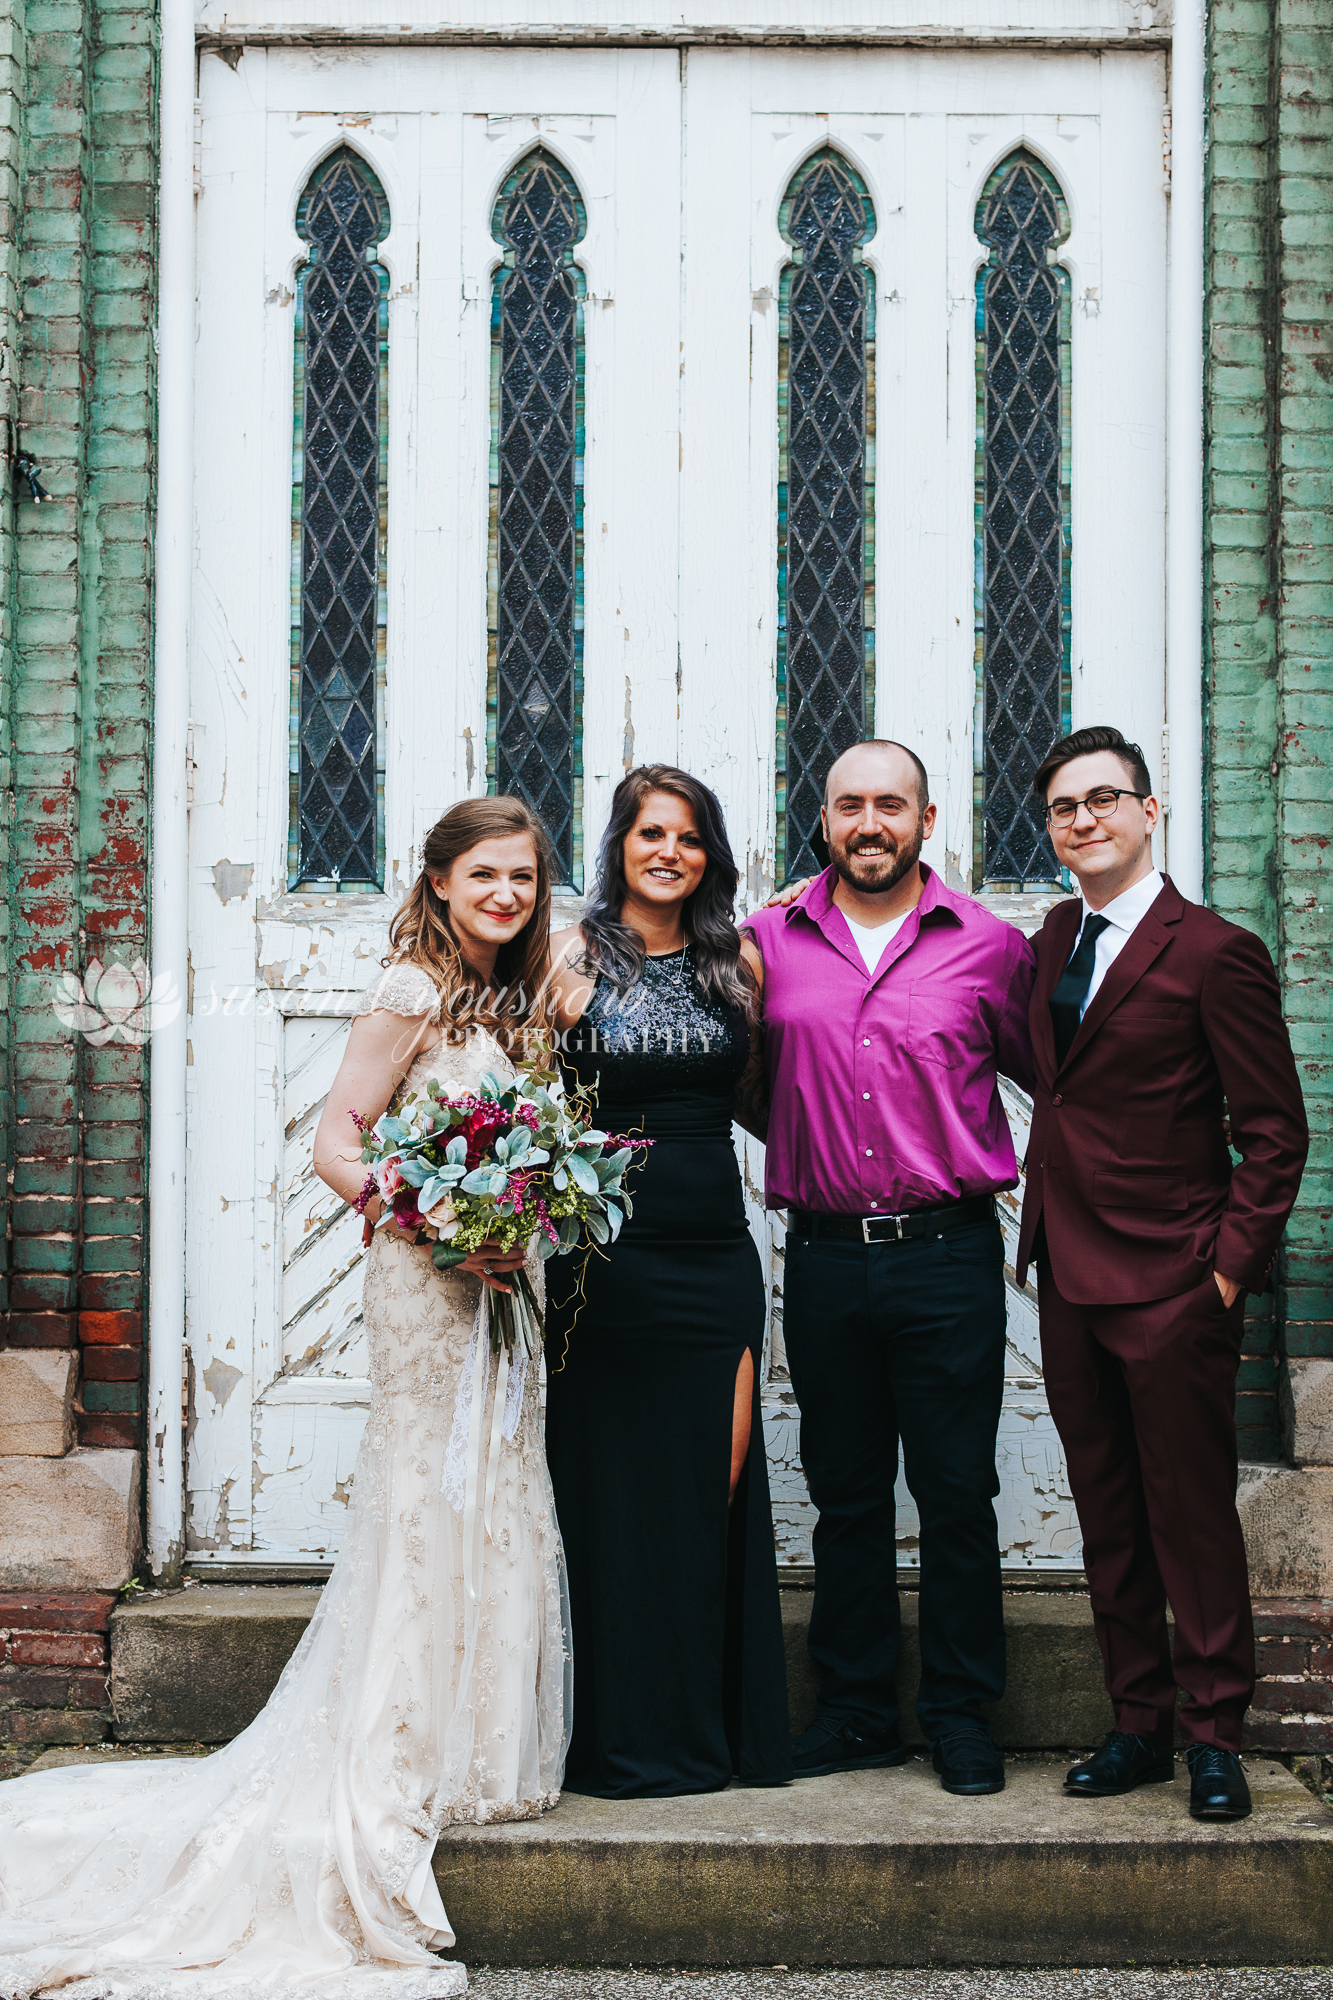 Chynna and John Wedding 05-18-2019 SLY Photography-61.jpg